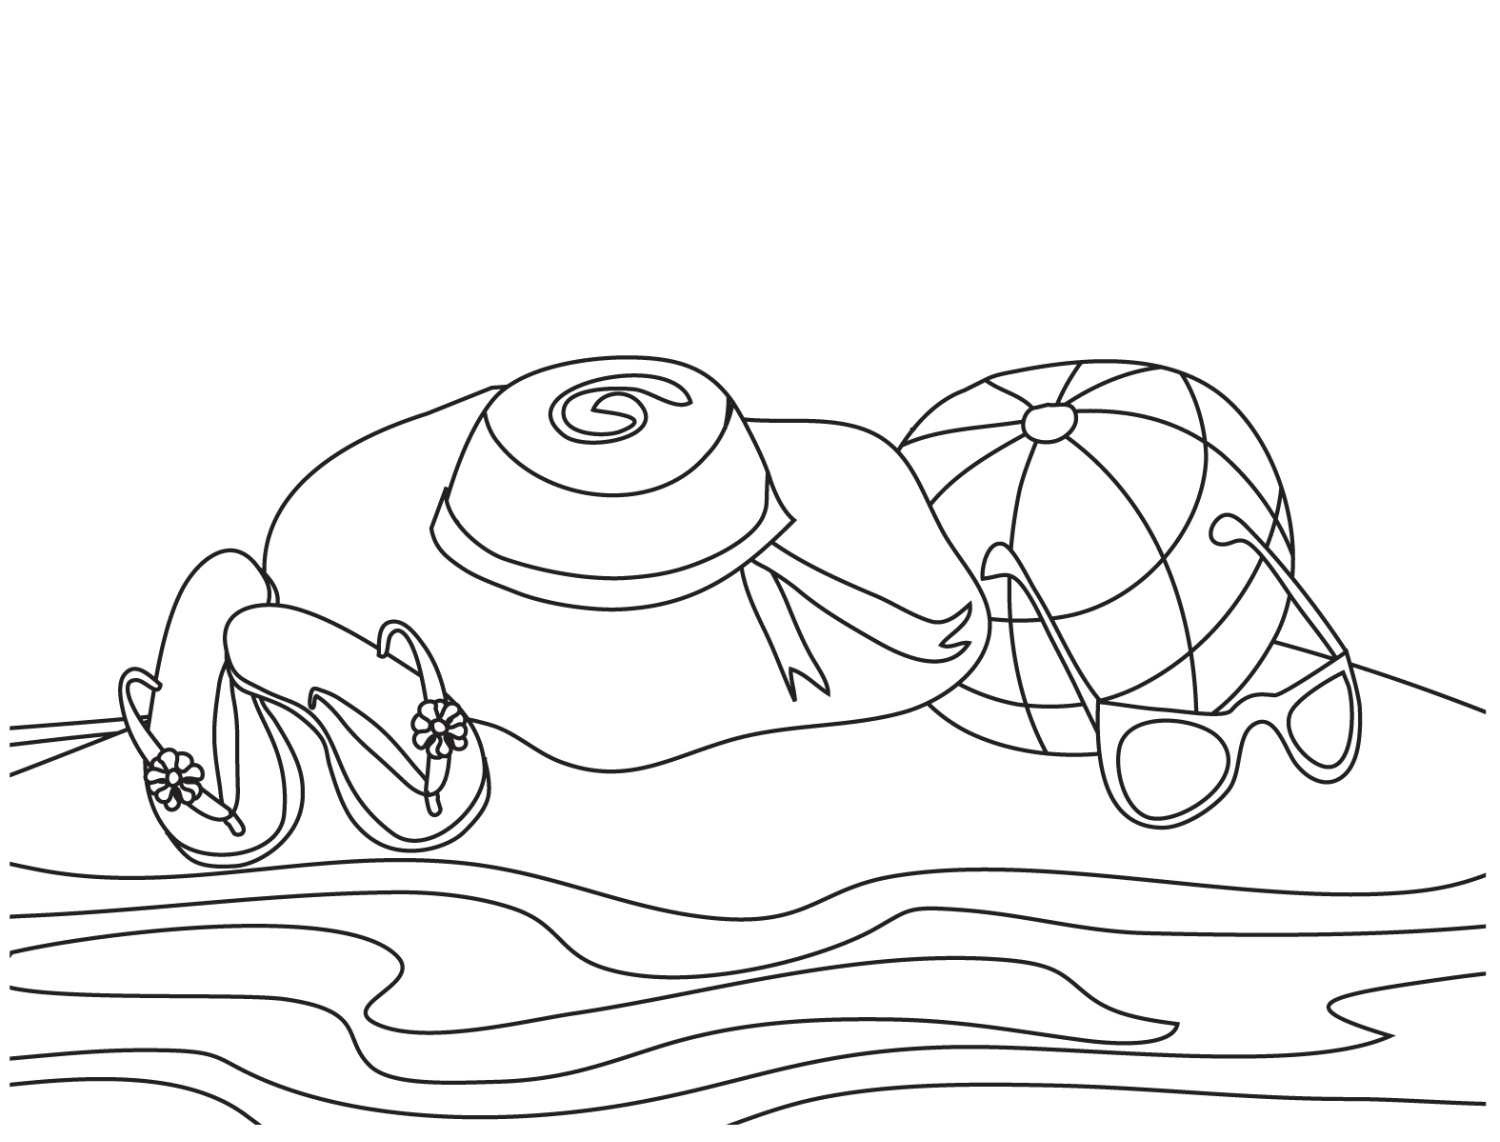 beach cartoon coloring pages beach coloring pages beach scenes activities beach cartoon coloring pages